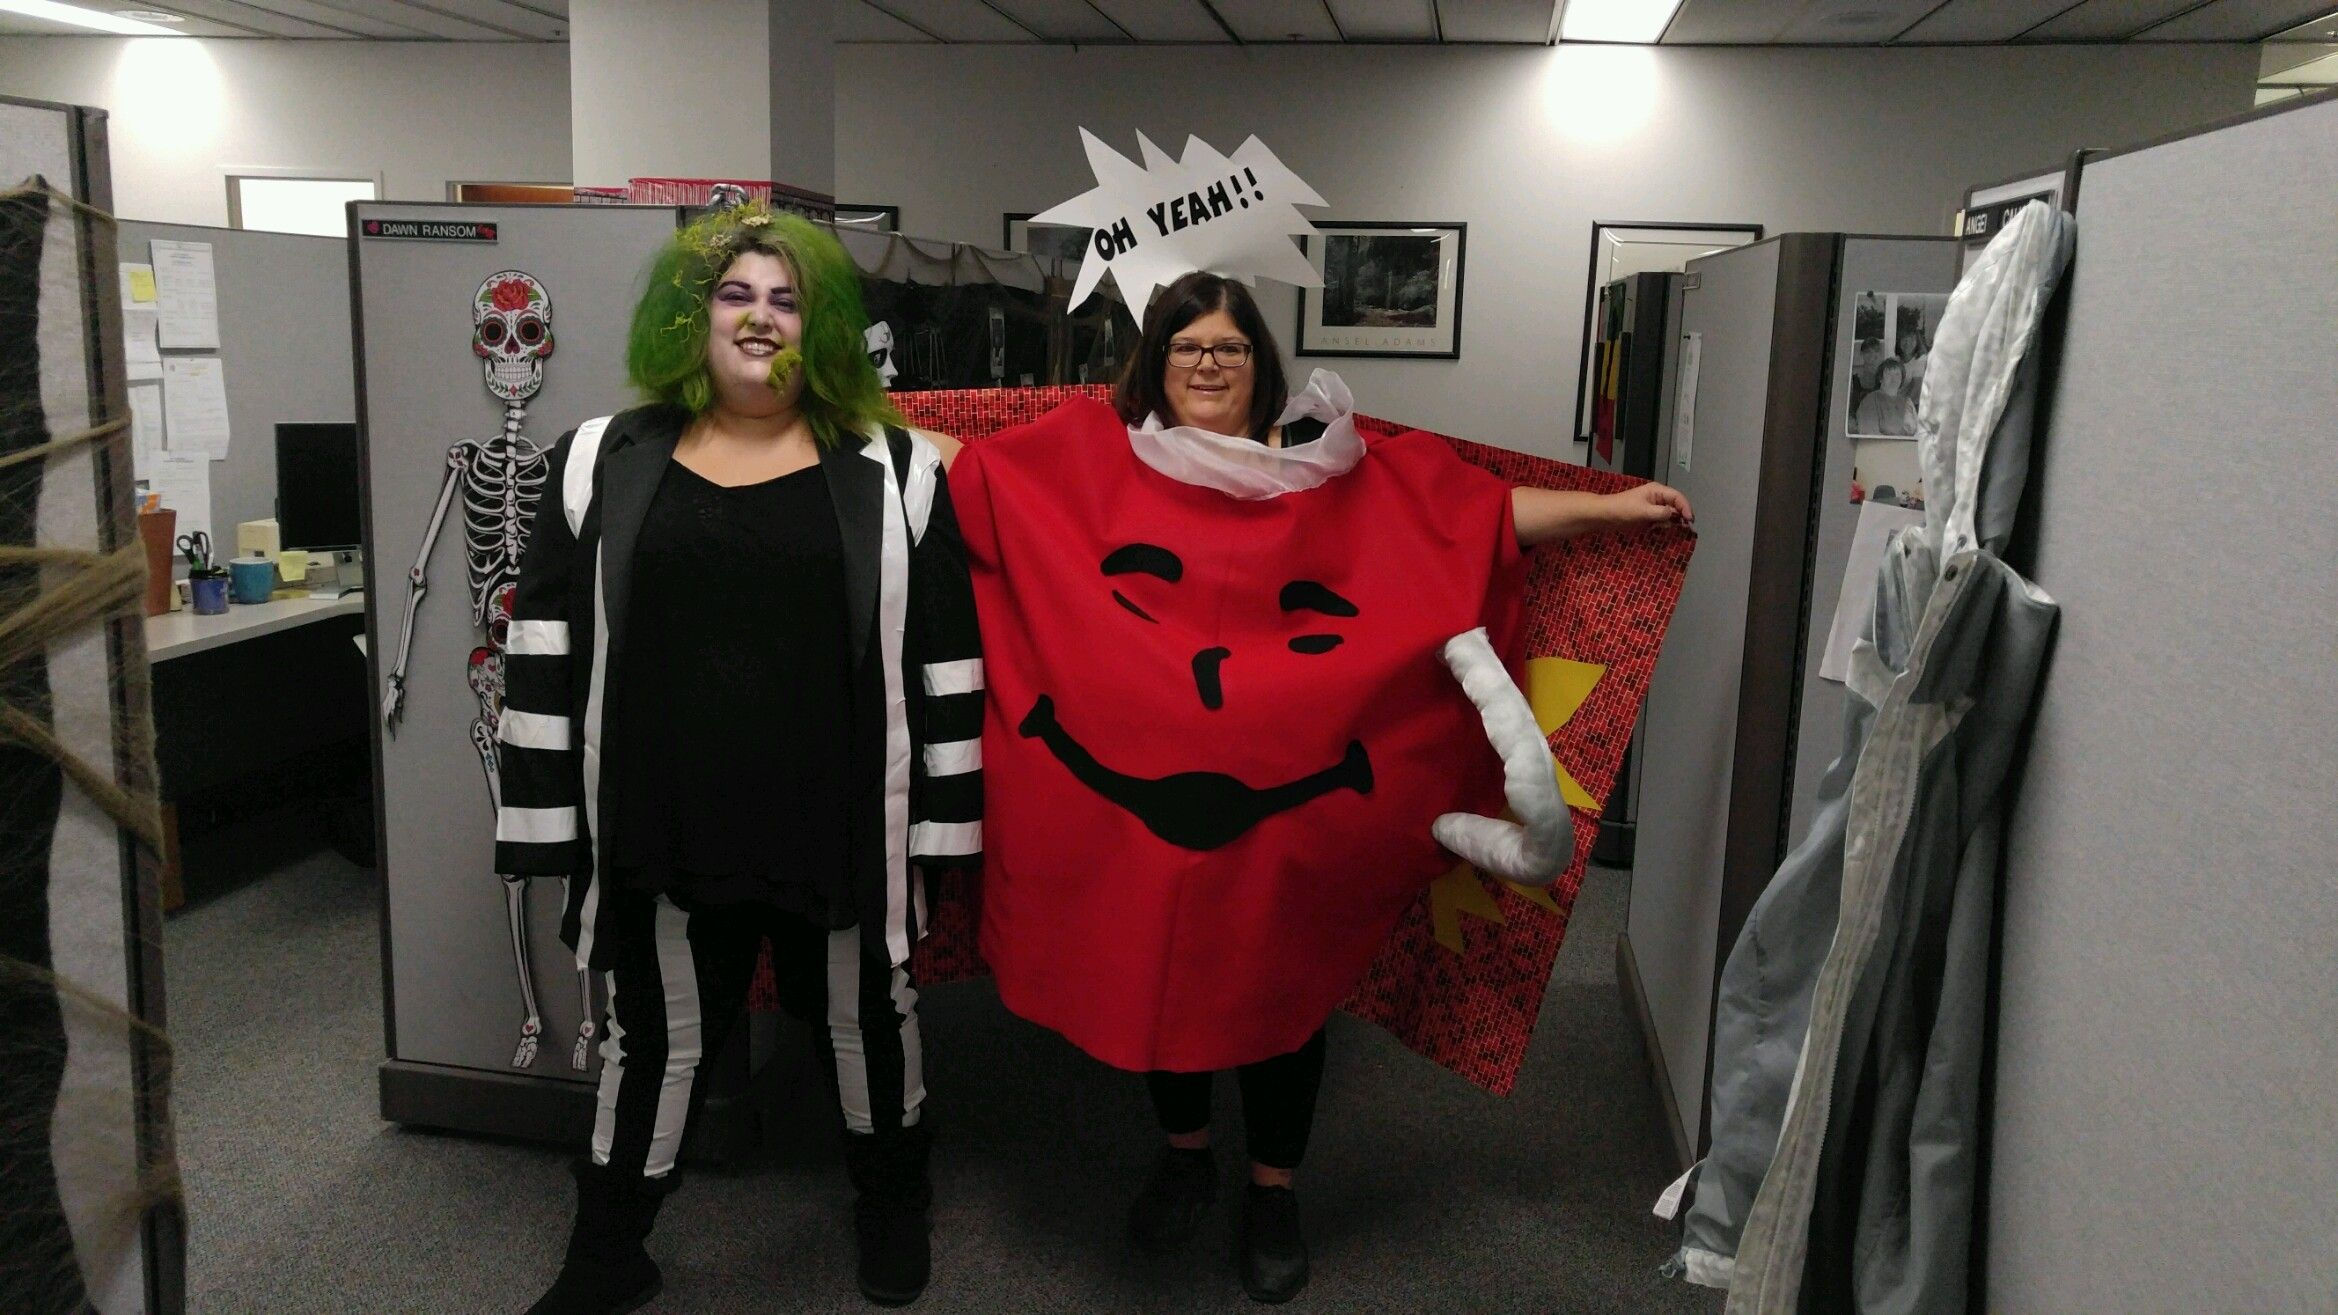 Beetlejuice And Kool Aid Man We Made These Costumes Love Them Costumes Fashion Halloween Costumes